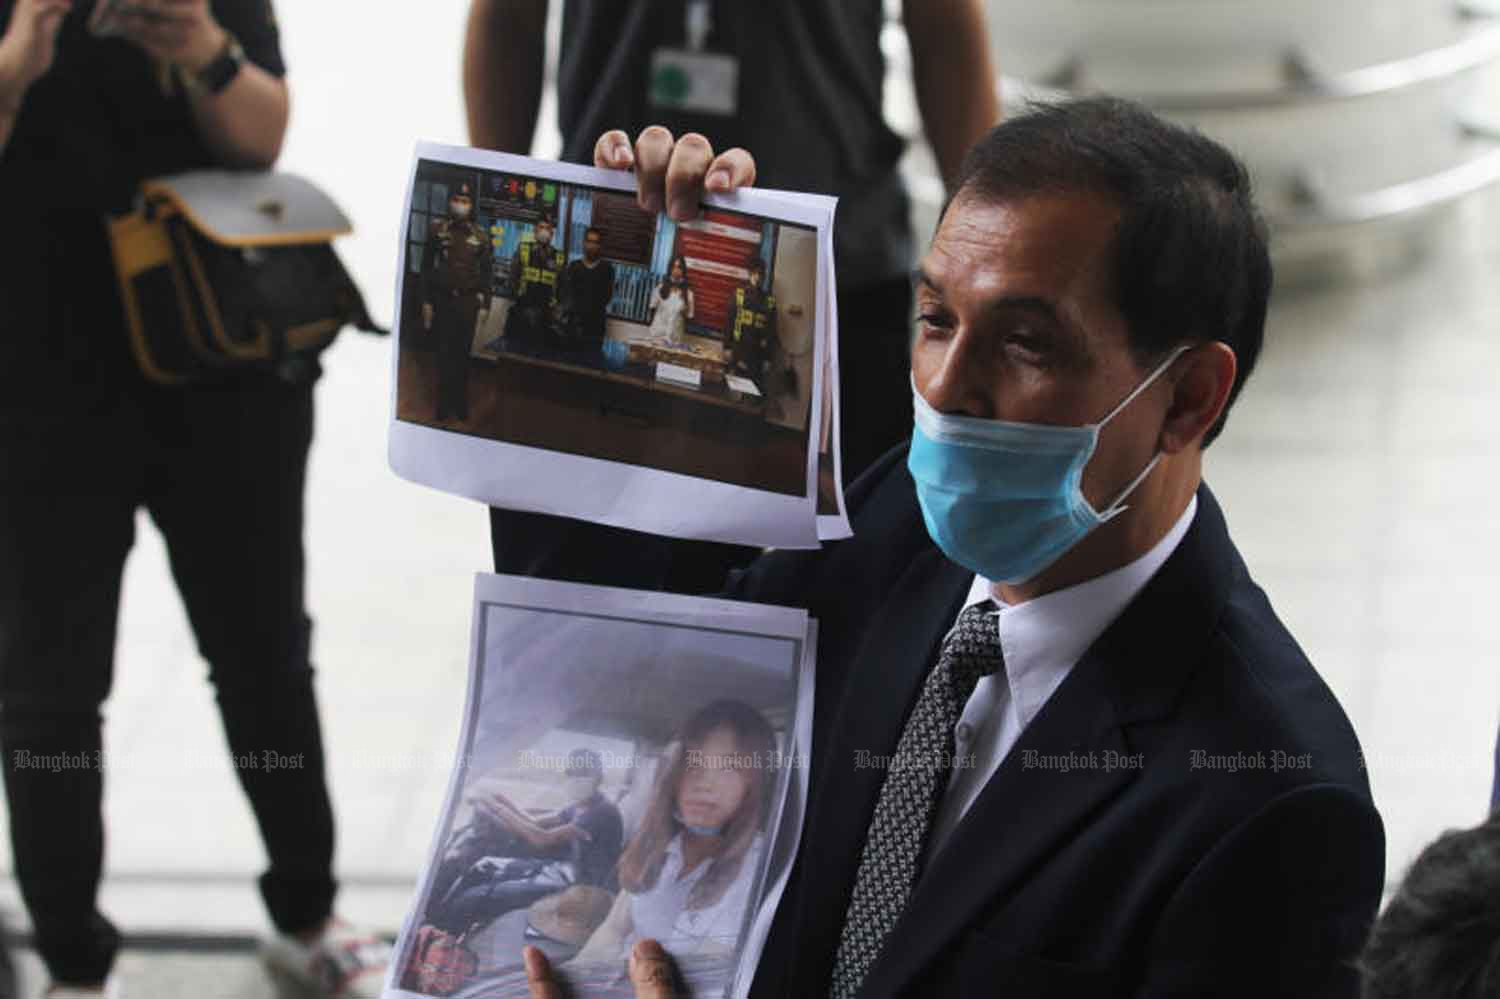 Lawyer Ananchai Chaidej shows pictures of two Myanmar suspects after their arrest.Nutthawat Wicheanbut